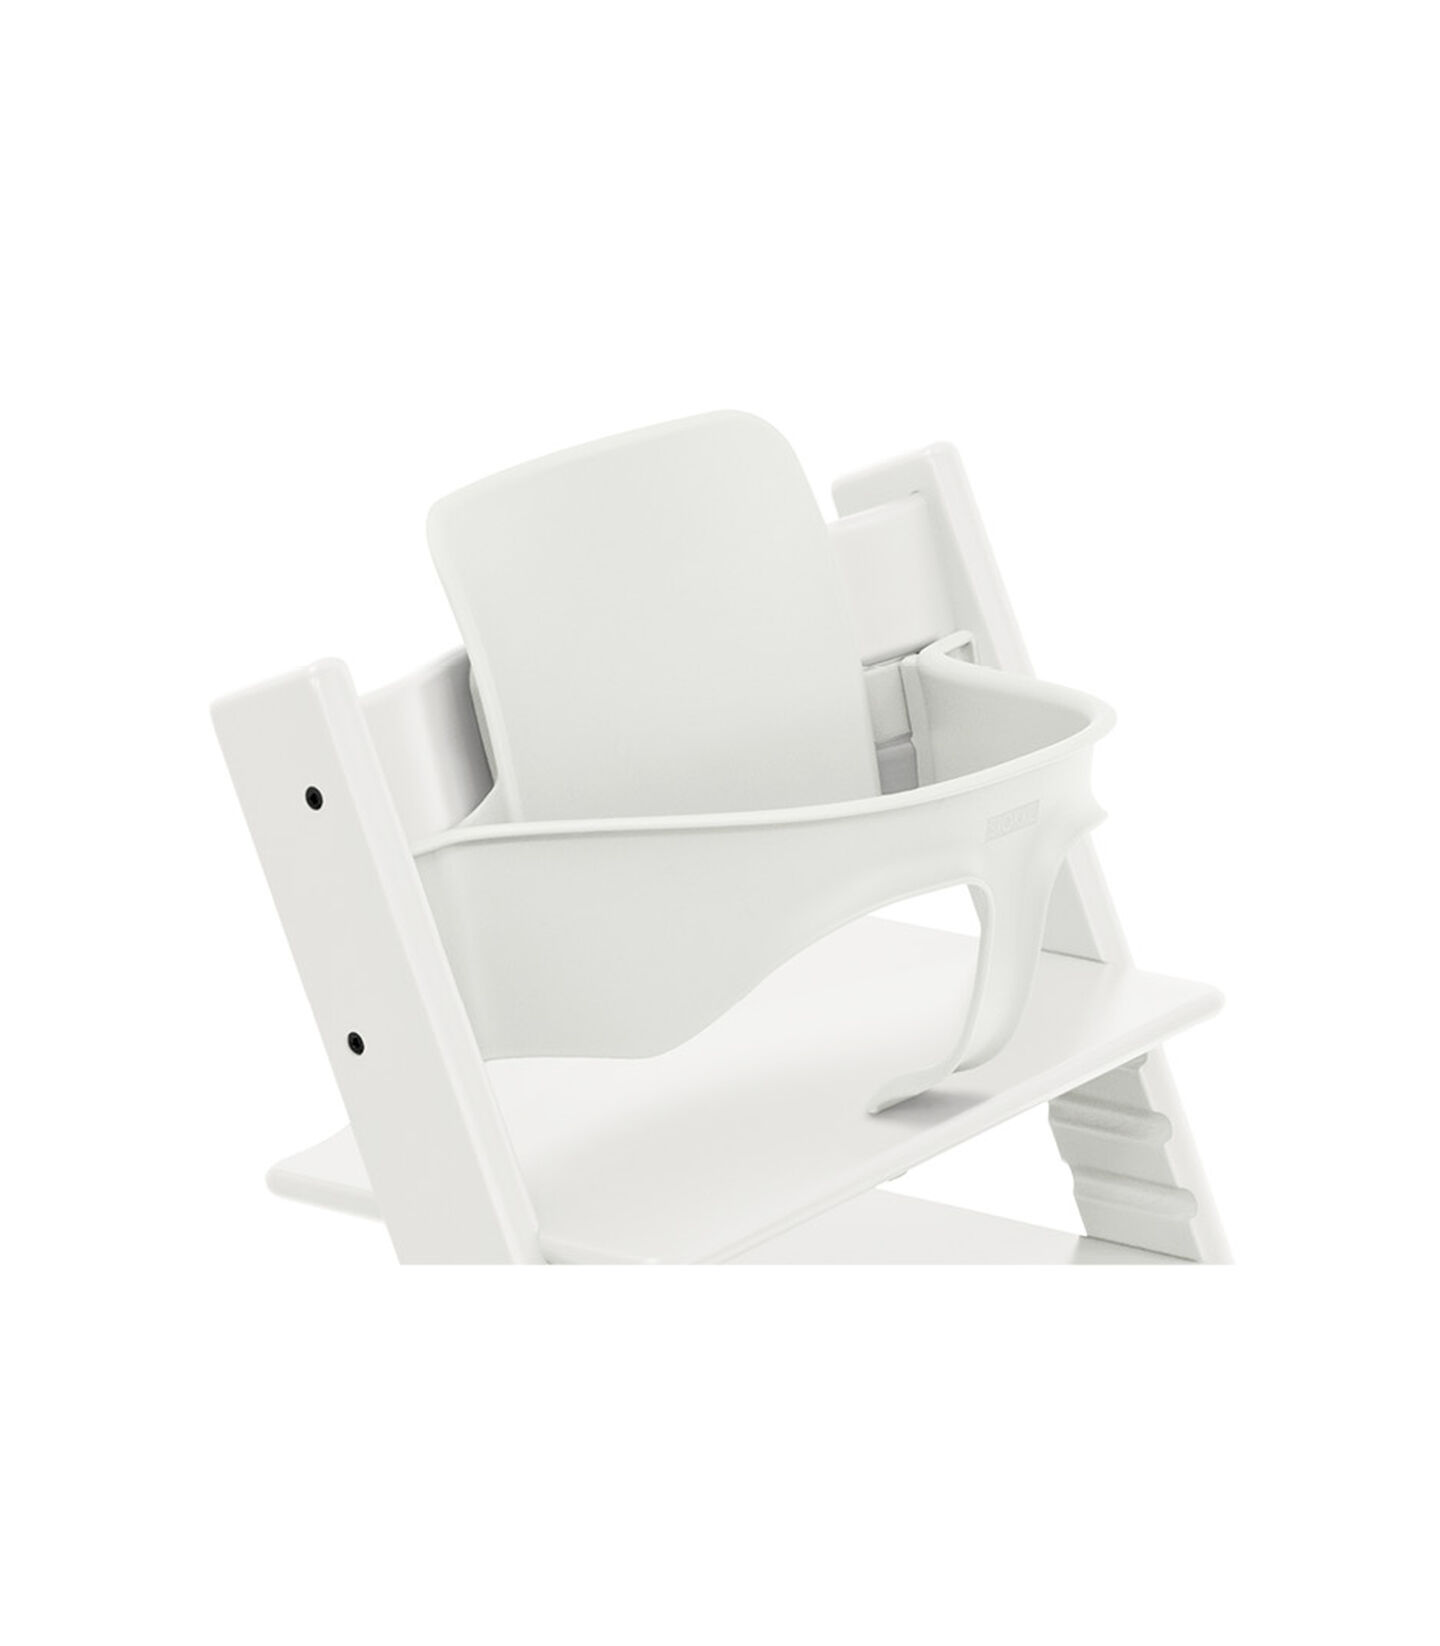 Tripp Trapp® Baby Set Blanc, Blanc, mainview view 2